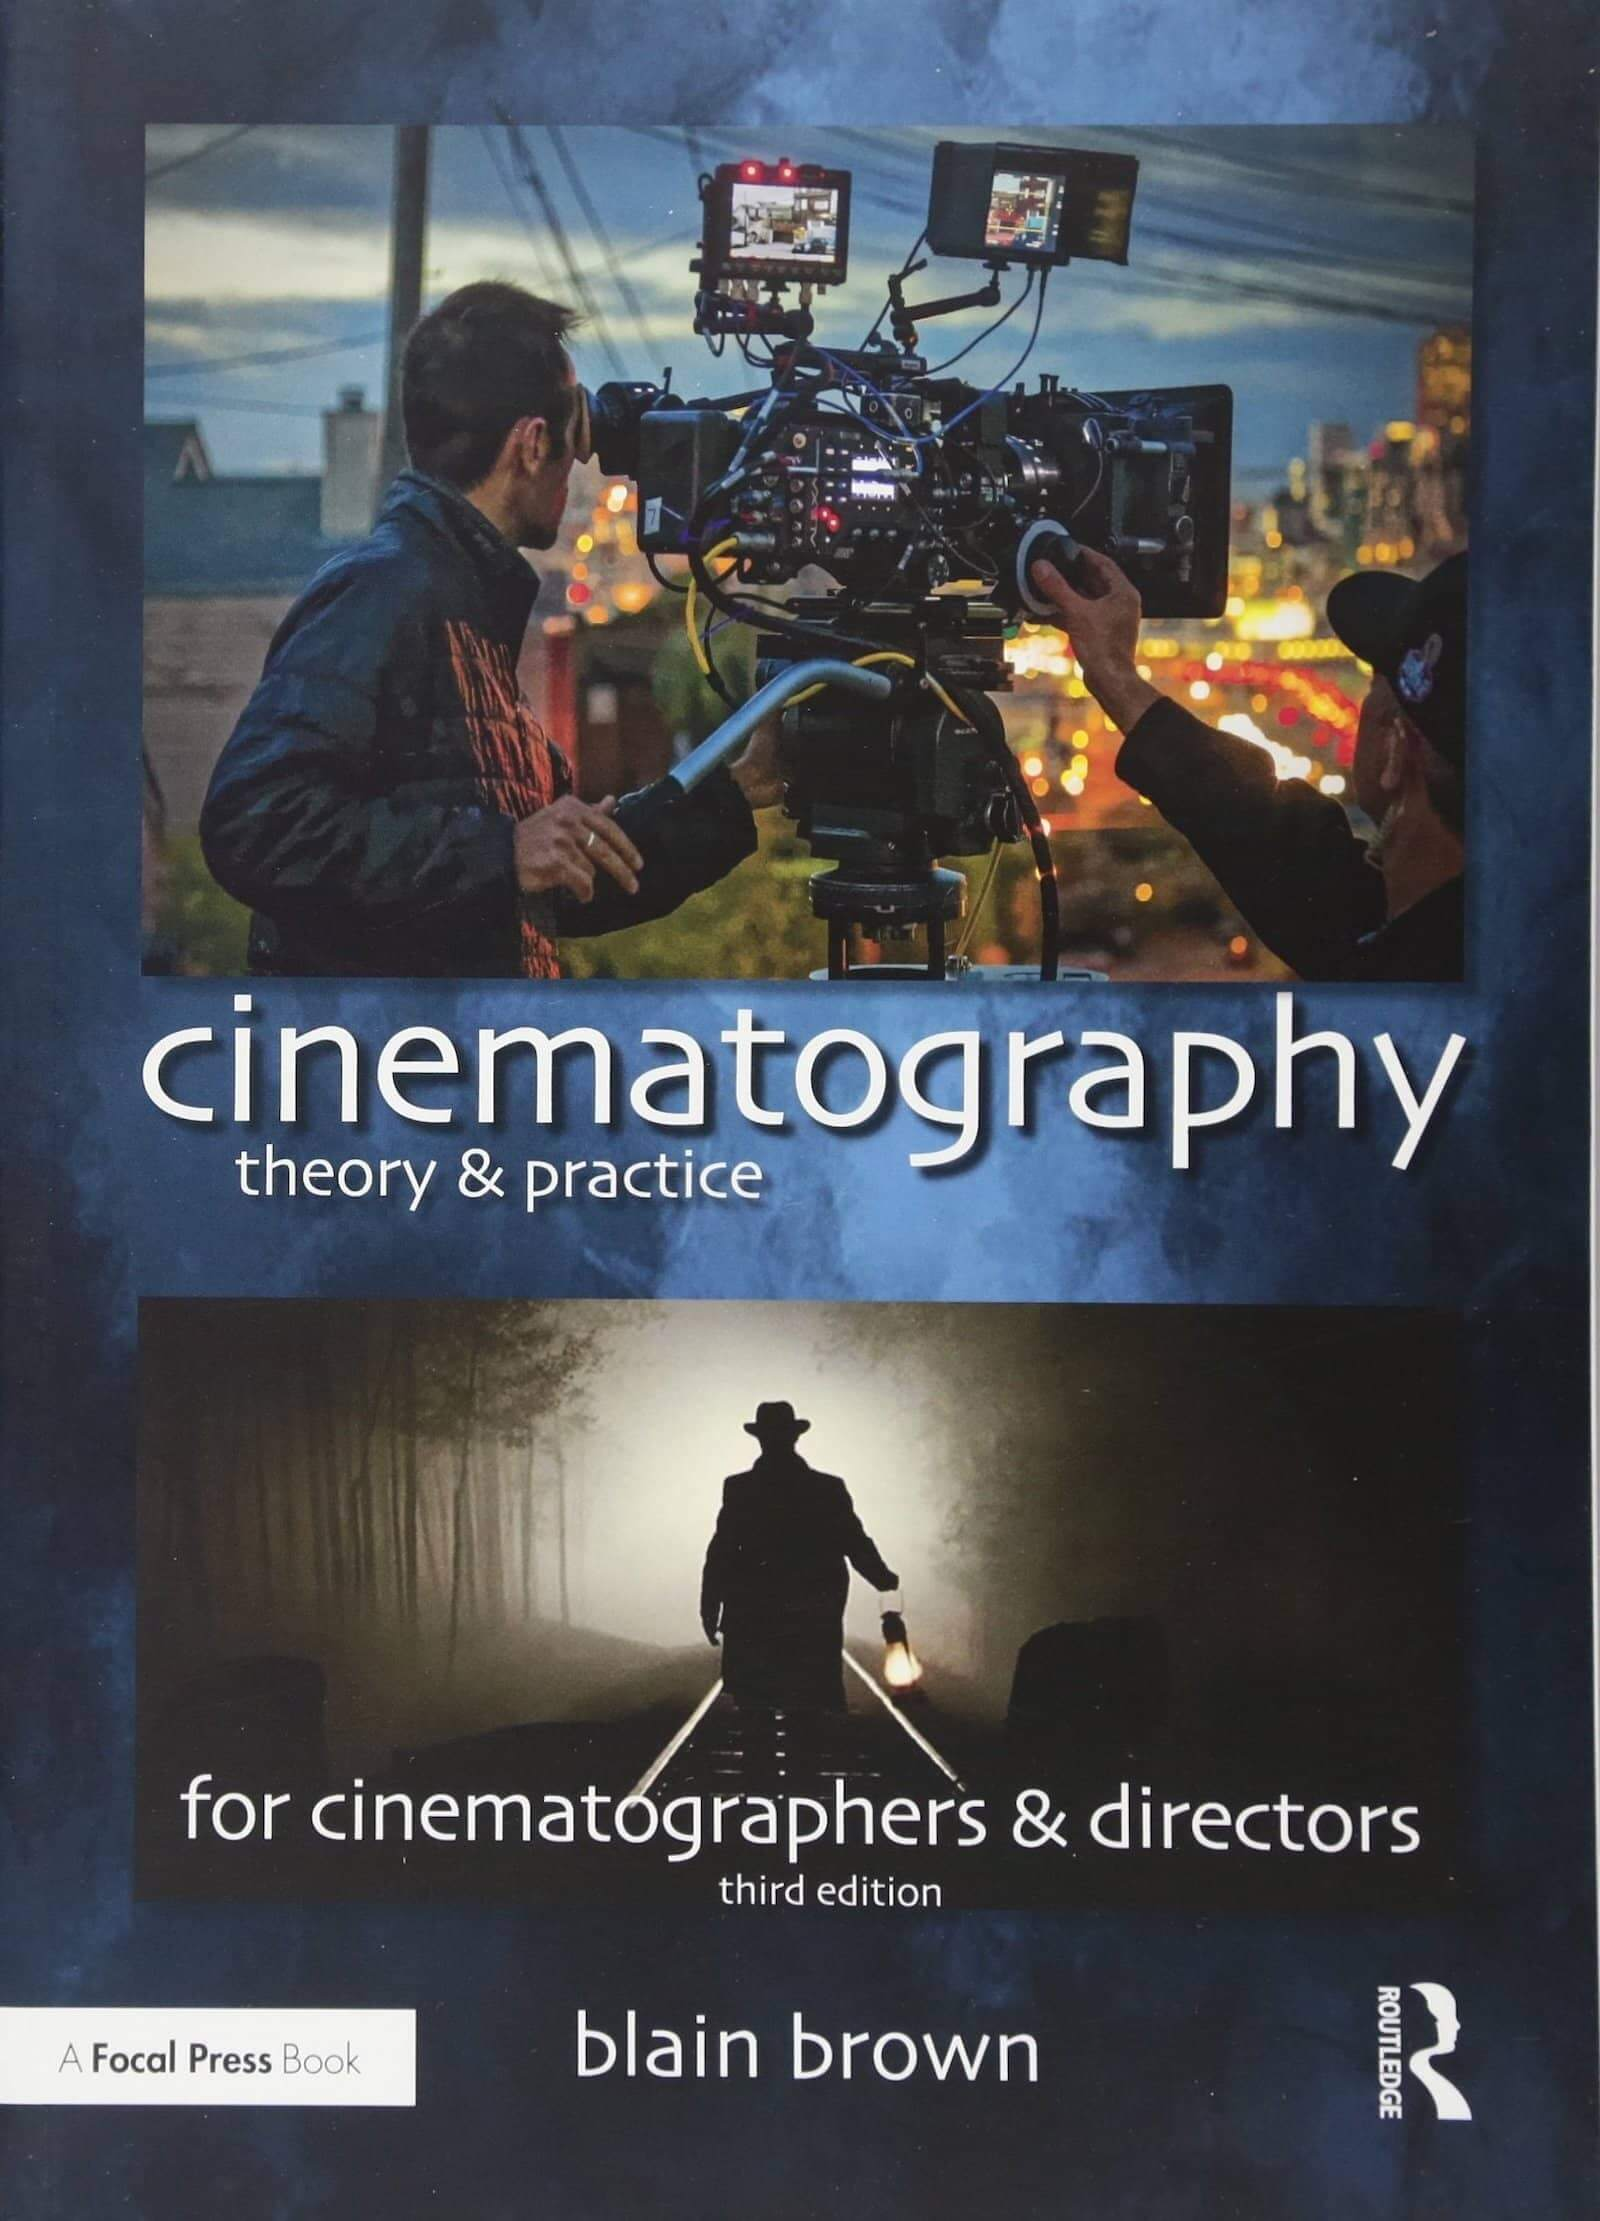 Best Cinematography Books - Cinematography Theory and Practice - Blain Brown - StudioBinder